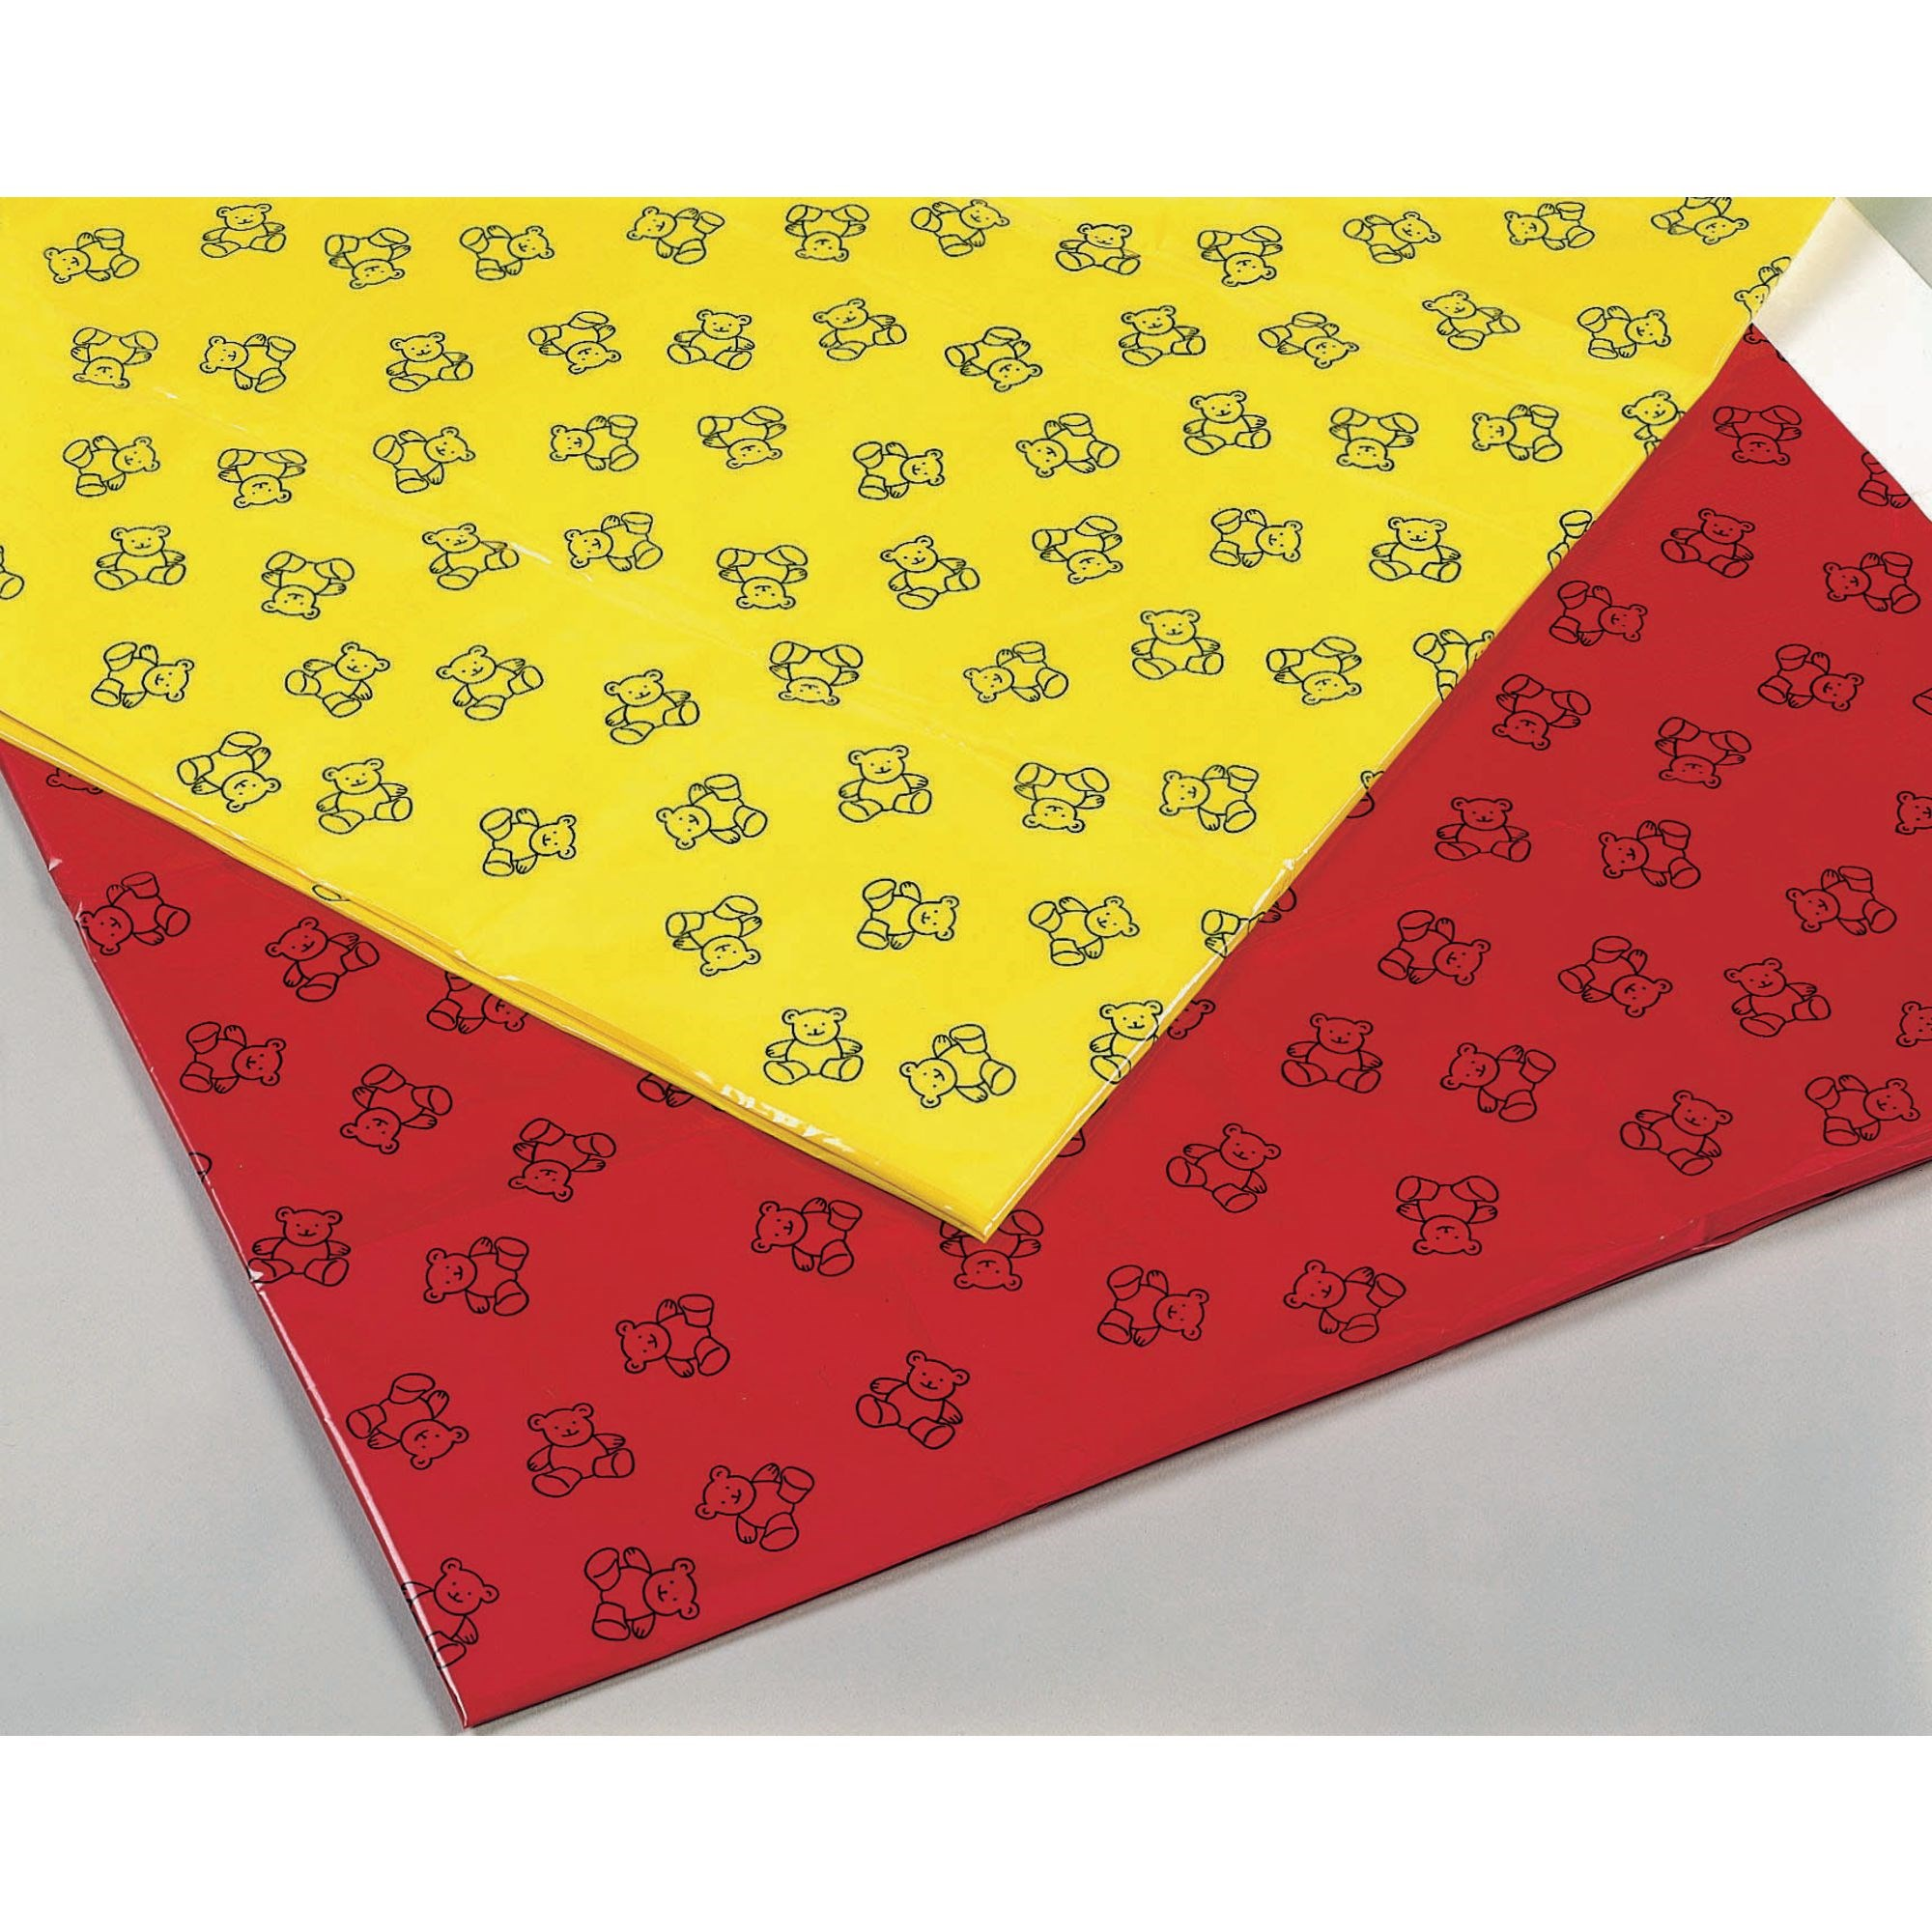 Teddy Splashmat - Red 1.47mSq